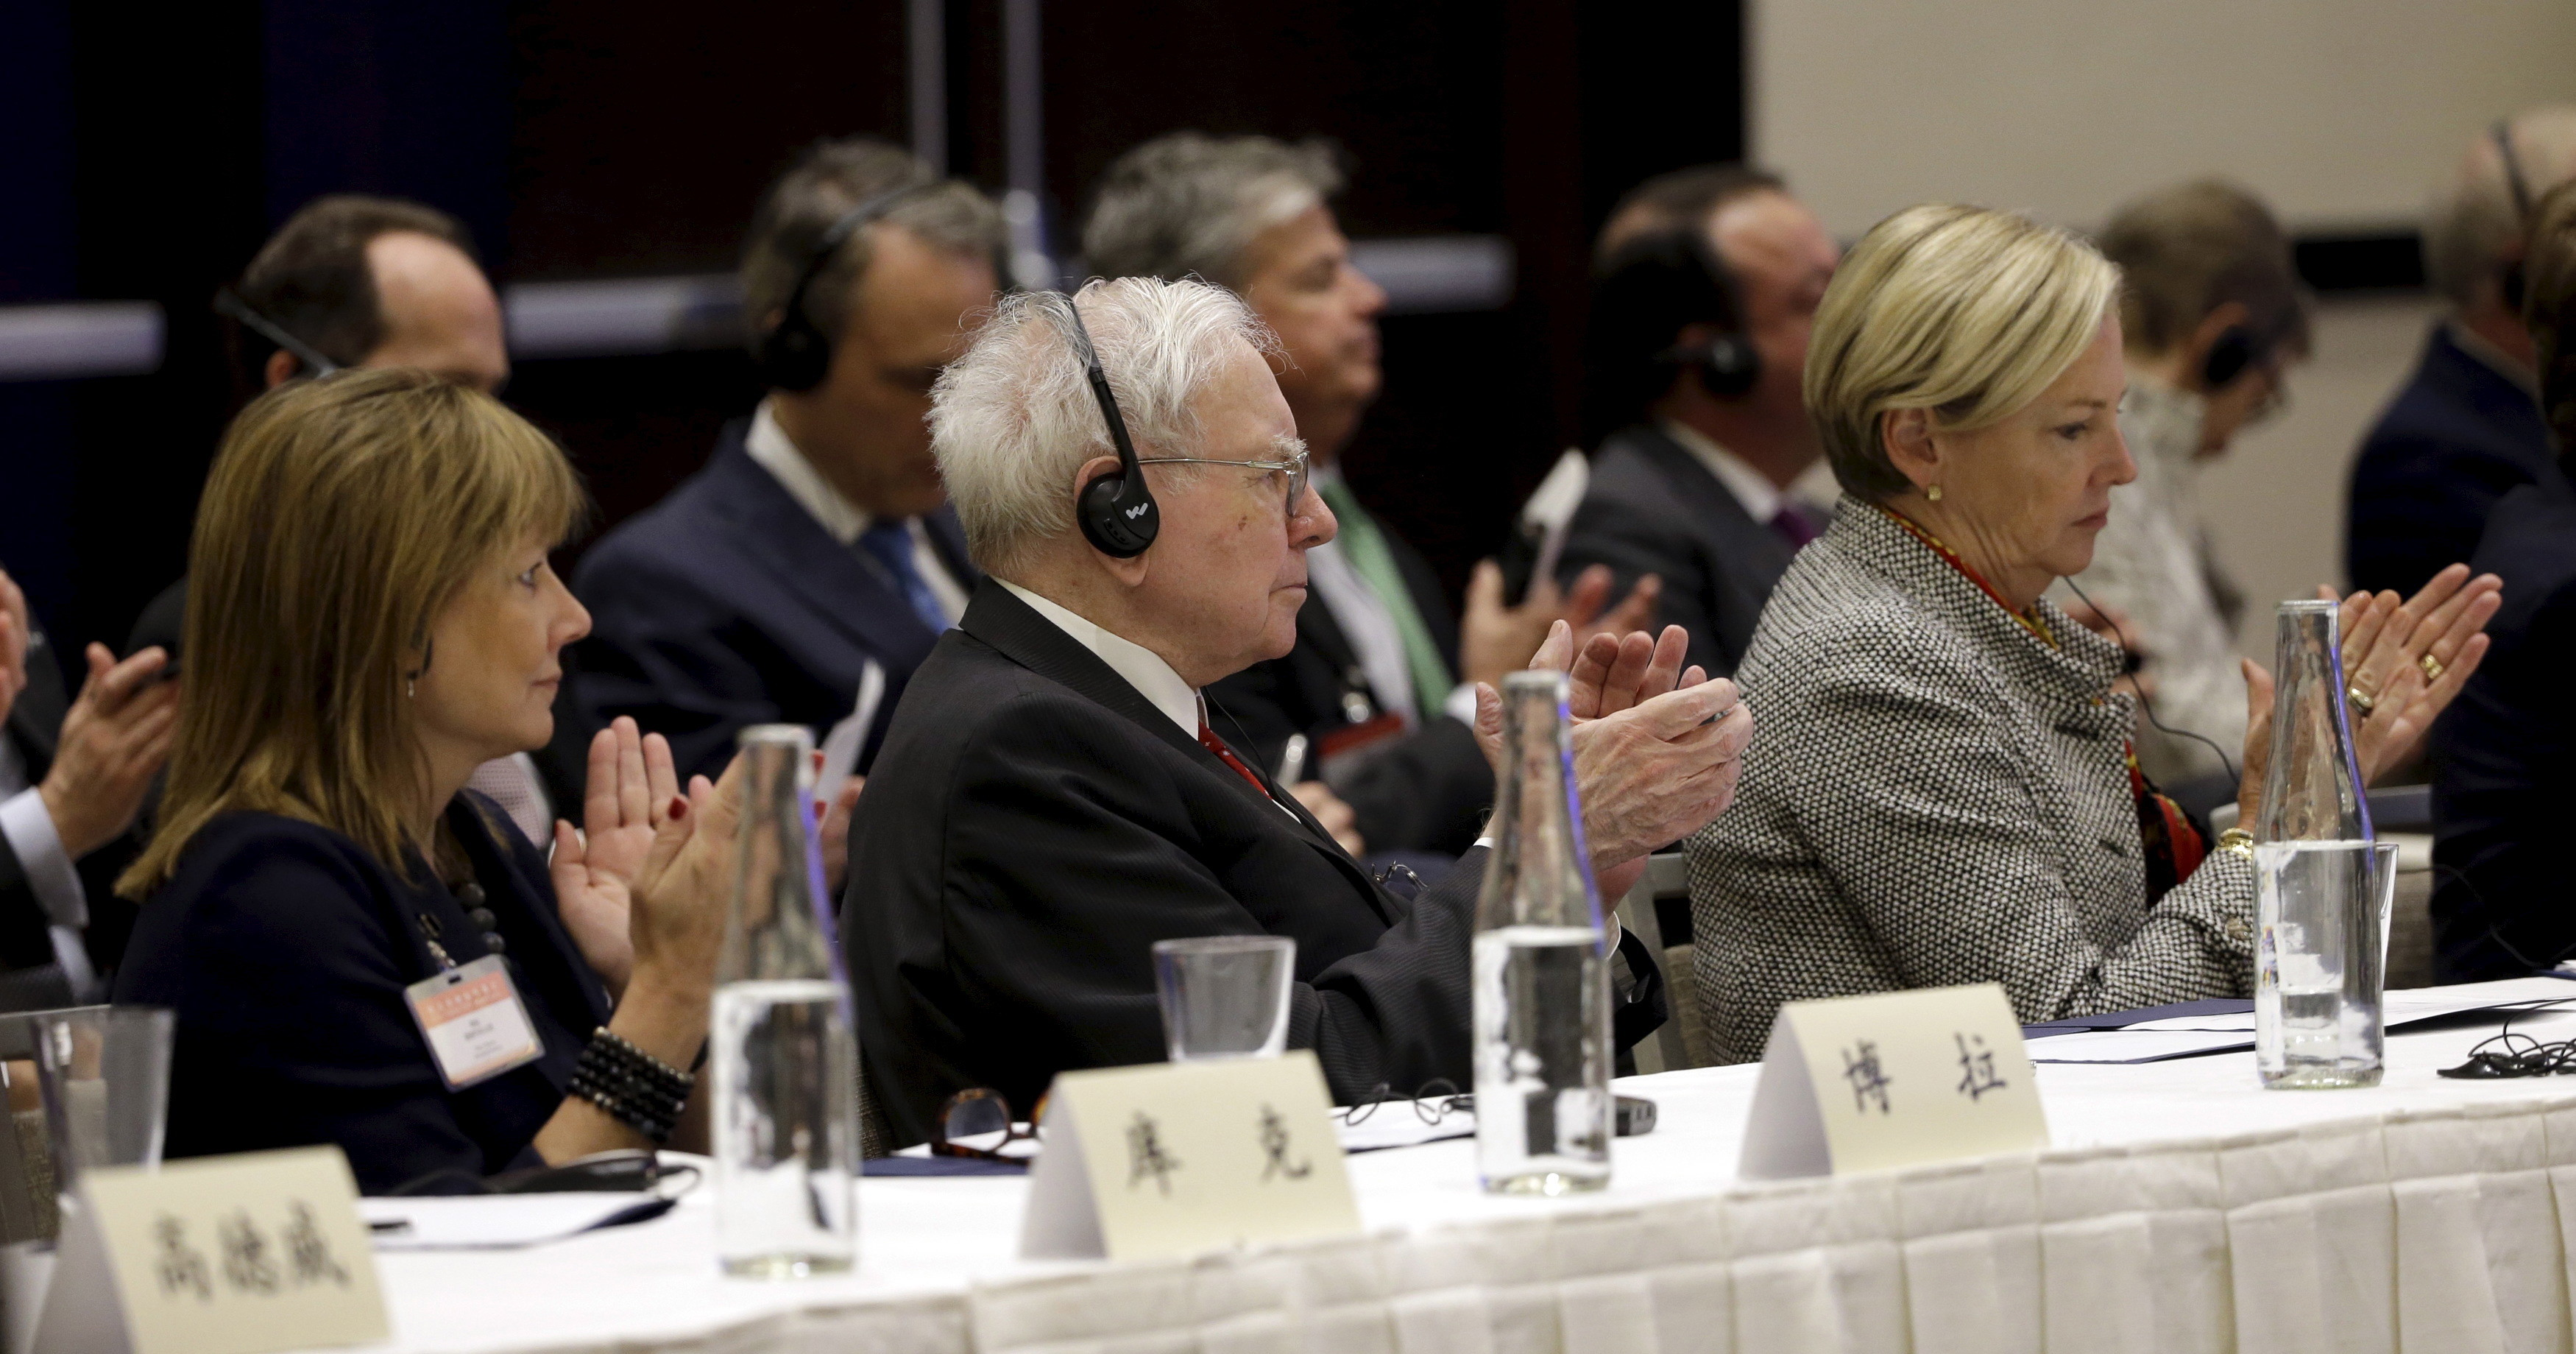 CEO's Mary Barra (L) of General Motors, Warren Buffett (C) of Berkshire Hathaway, and Ellen Kullman, of DuPont, applaud as Chinese President Xi Jinping concludes a talk at a U.S.-China business roundtable, comprised of U.S. and Chinese CEOs, in Seattle, Washington Sept. 23, 2015. The Paulson Institute, in partnership with the China Council for the Promotion of International Trade, co-hosted the event. REUTERS/Elaine Thompson/Pool - RTX1S3OC